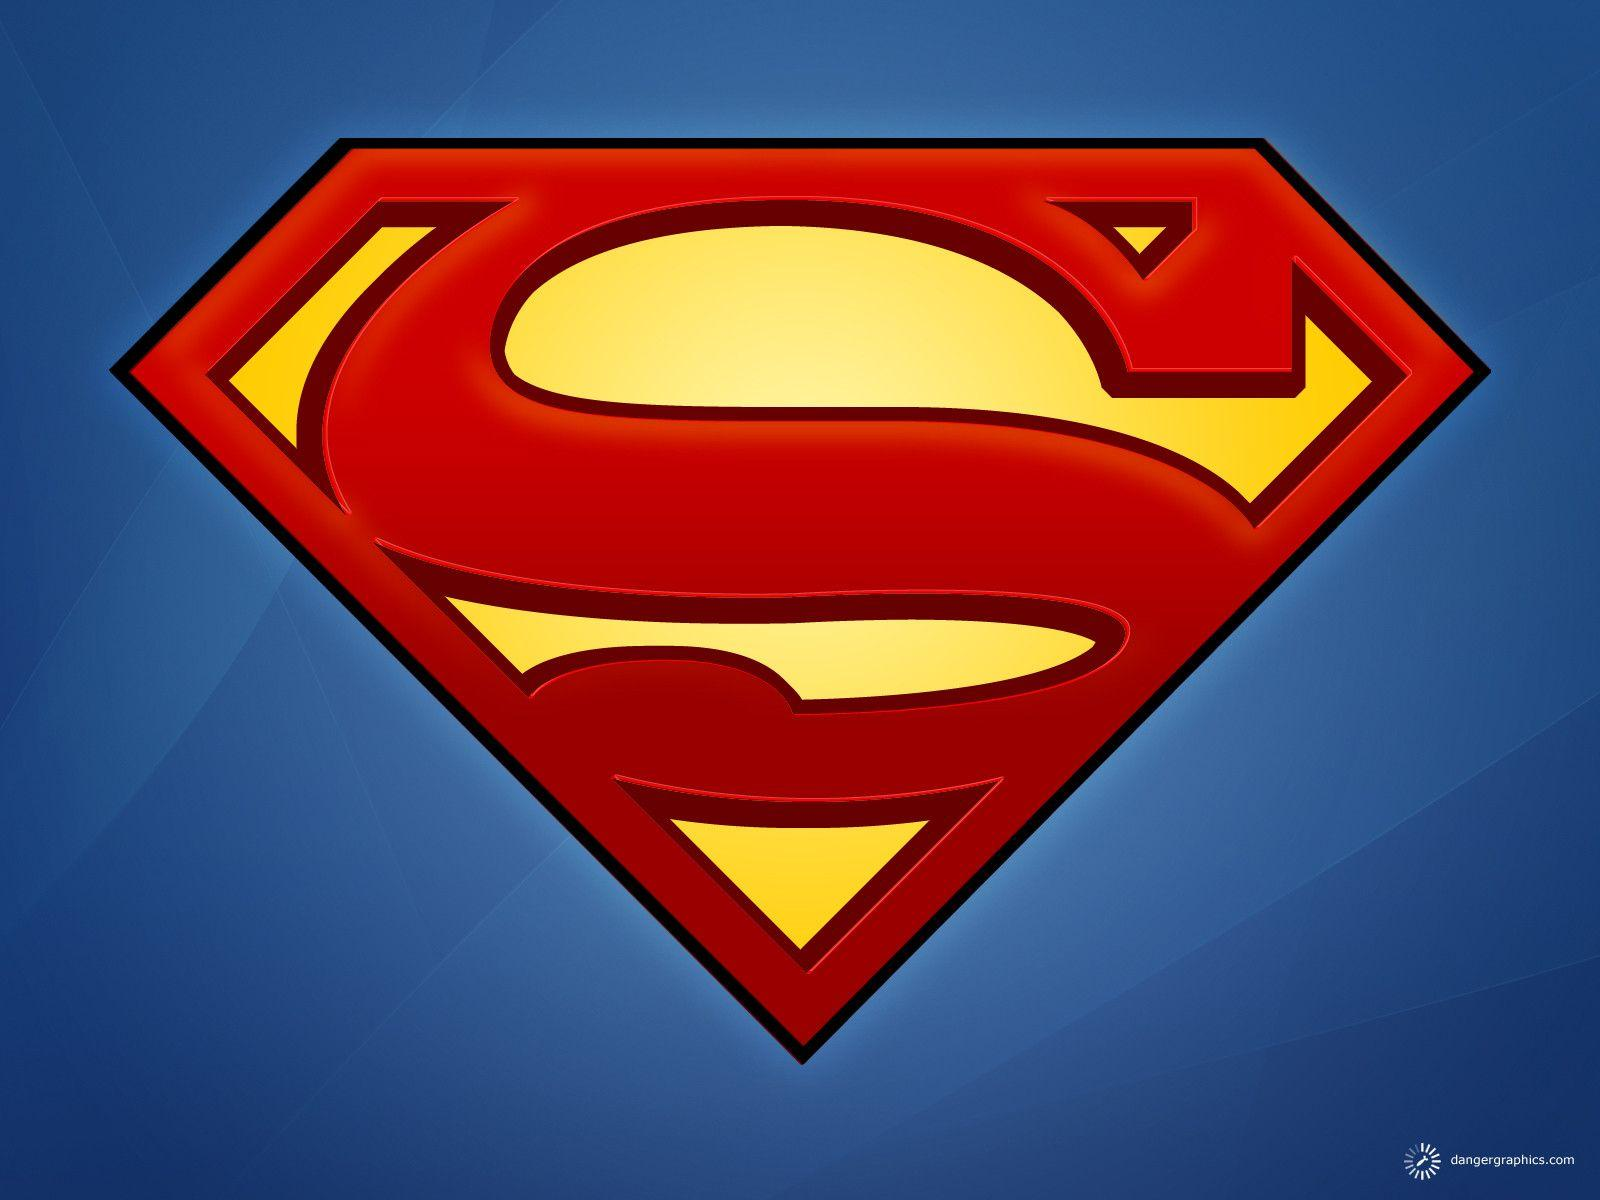 Superman Logo Wallpapers 1600x1200